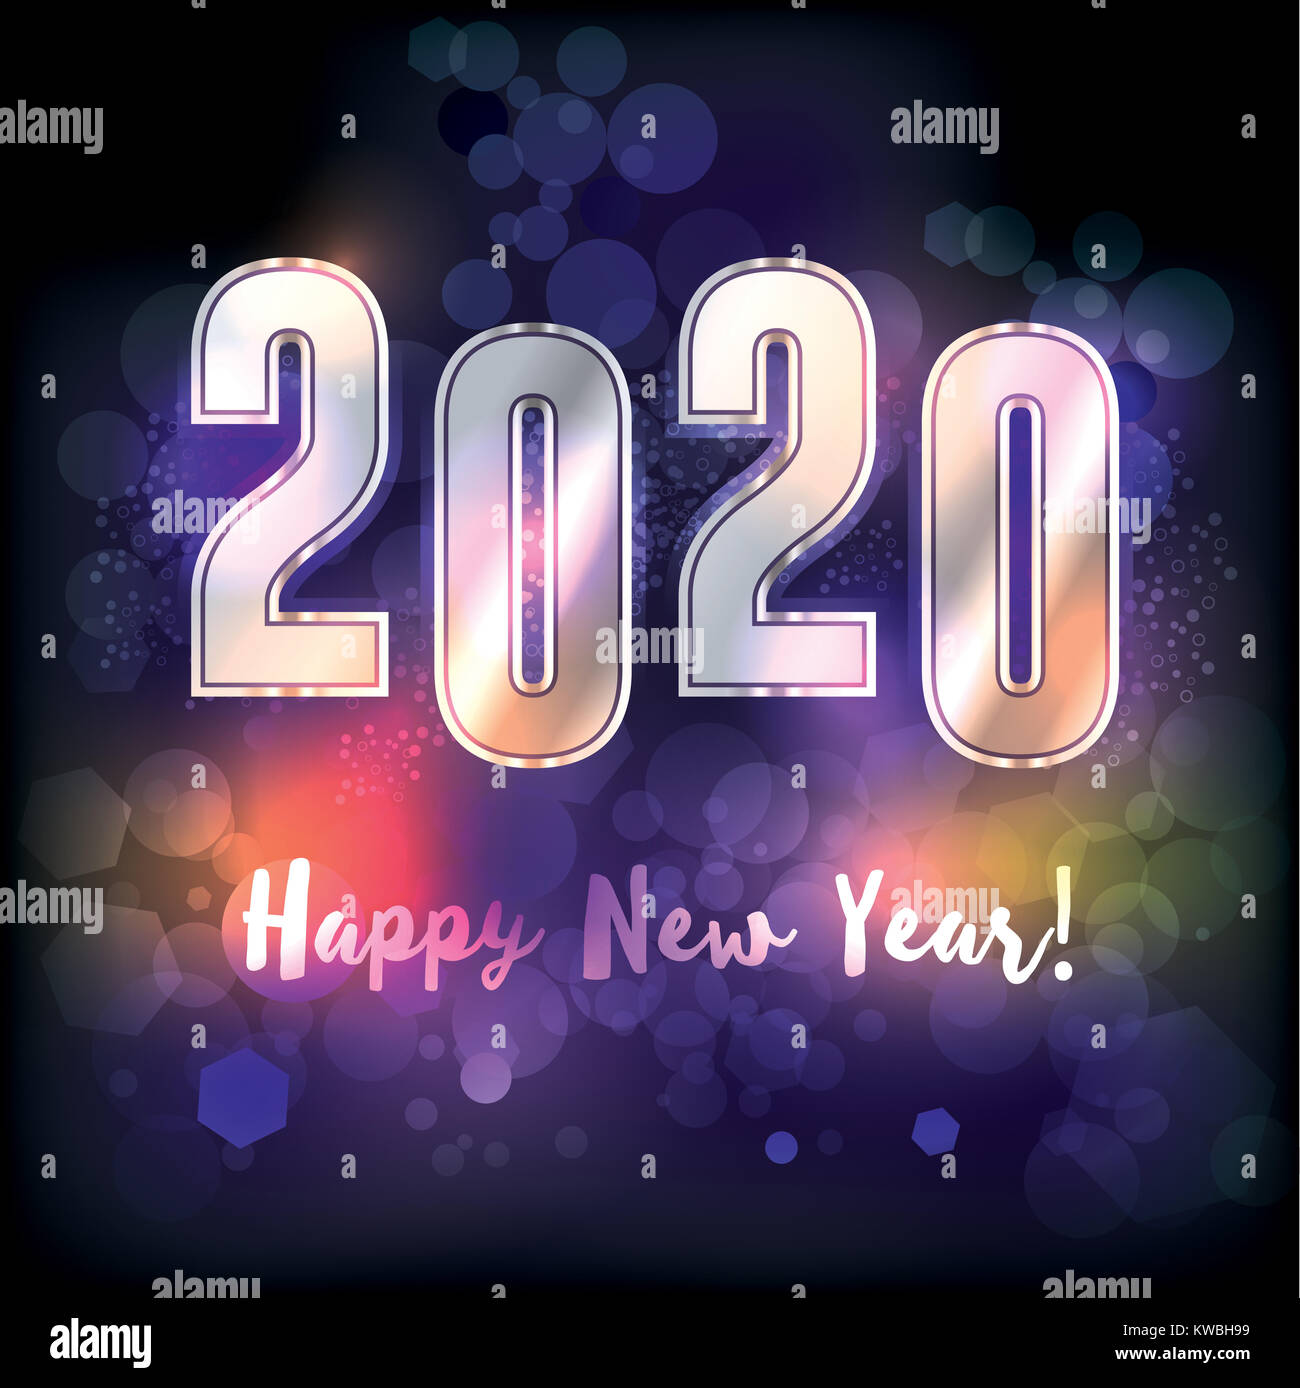 New Year 2020 Messages A happy new year 2020 New Year's message illustration. Vector EPS